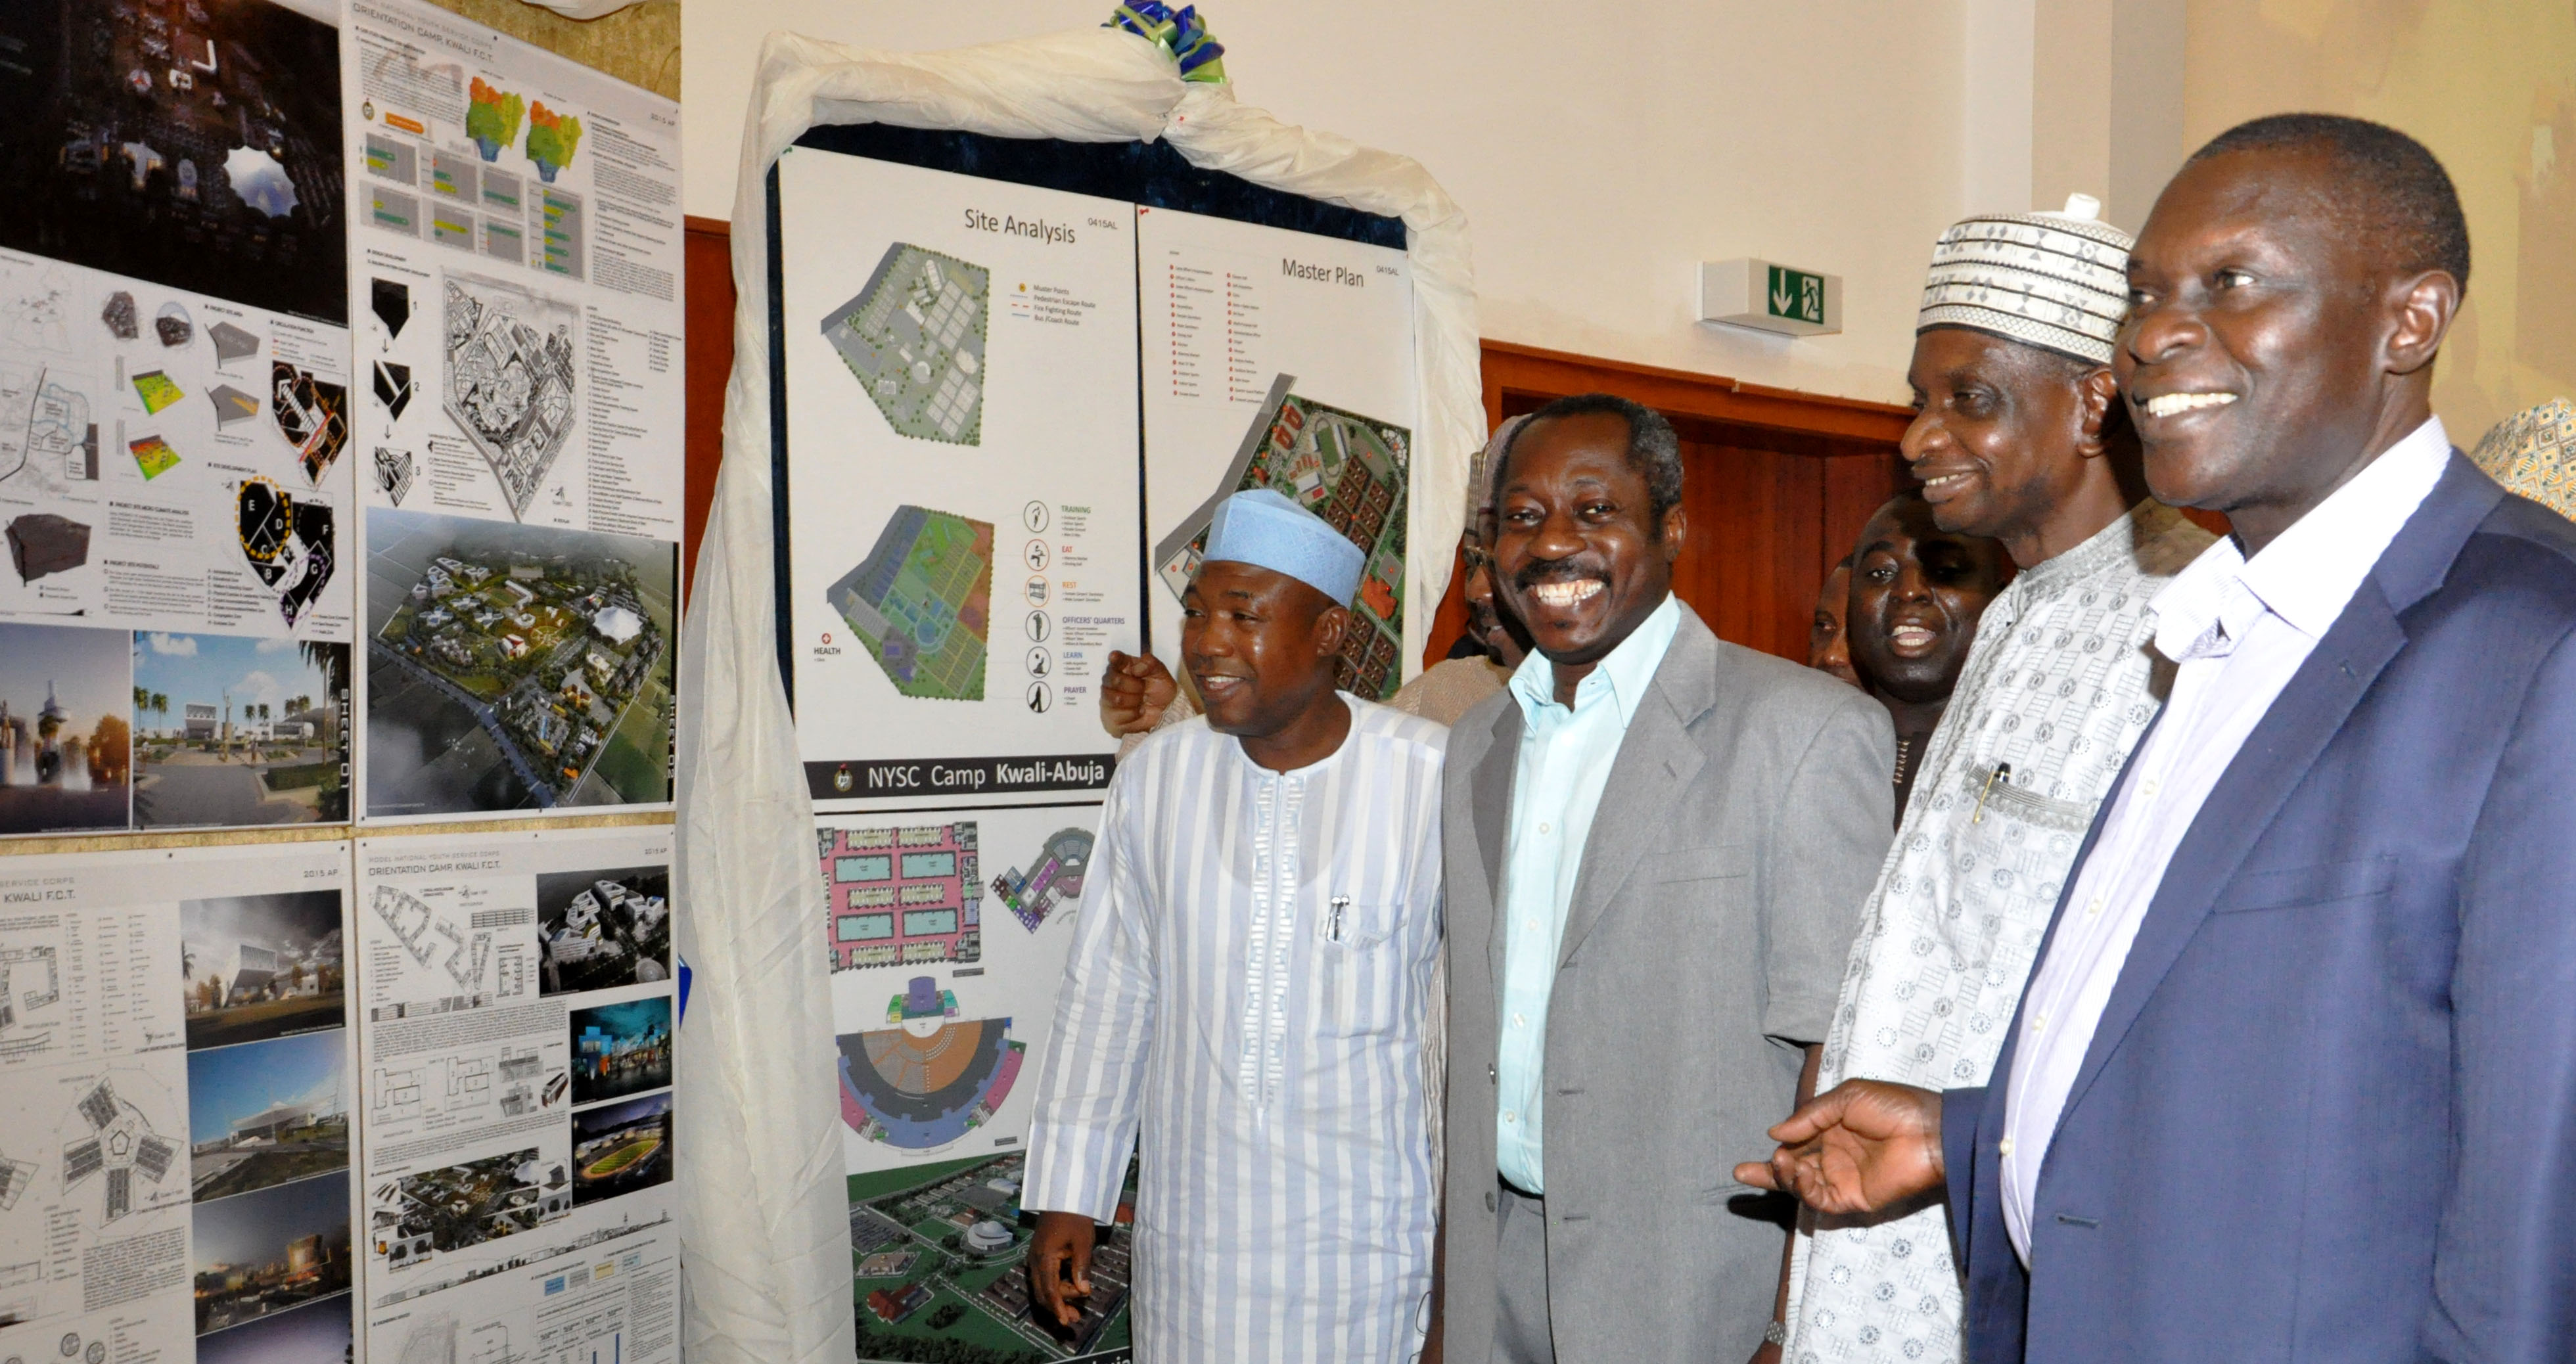 PIC. 9. FROM LEFT: DIRECTOR OF PROCUREMENT, FCDA, ALHAJI ADEWALE DAMBTA; DEPUTY DIRECTOR, ARCHITECTURE, PUBLIC BUILDING DEPARTMENT, MR ADEBOWALE ADEMO; DIRECTOR, SATELLITE TOWN DEVELOPMENT, MR SOSO MOHAMMED AND DIRECTOR, PUBLIC BUILDING, MR BERNARD LOT, ADMIRING THE MASTER PLAN CONCEPT OF THE WINNING ENTRY OF THE ARCHITECTURAL DESIGN COMPETITION FOR THE MODEL NYSC ORIENTATION CAMP, KWALI IN ABUJA ON WEDNESDAY (8/4/15). 1850/8/4/2015/OTU/CH/BJO/NAN